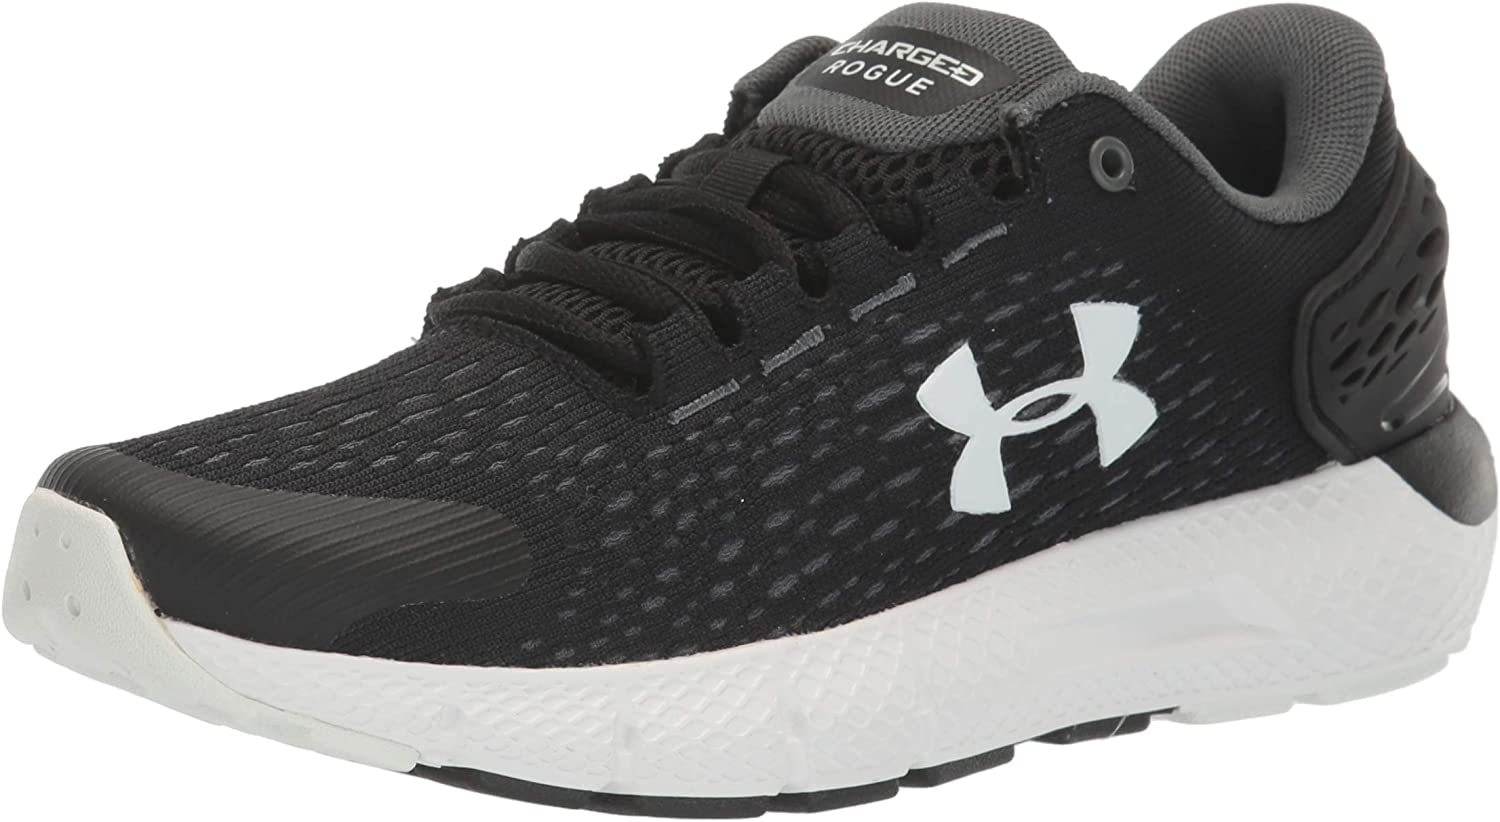 Under Armour Unisex Kids/' Grade School Charged Rogue 2 Running Shoes